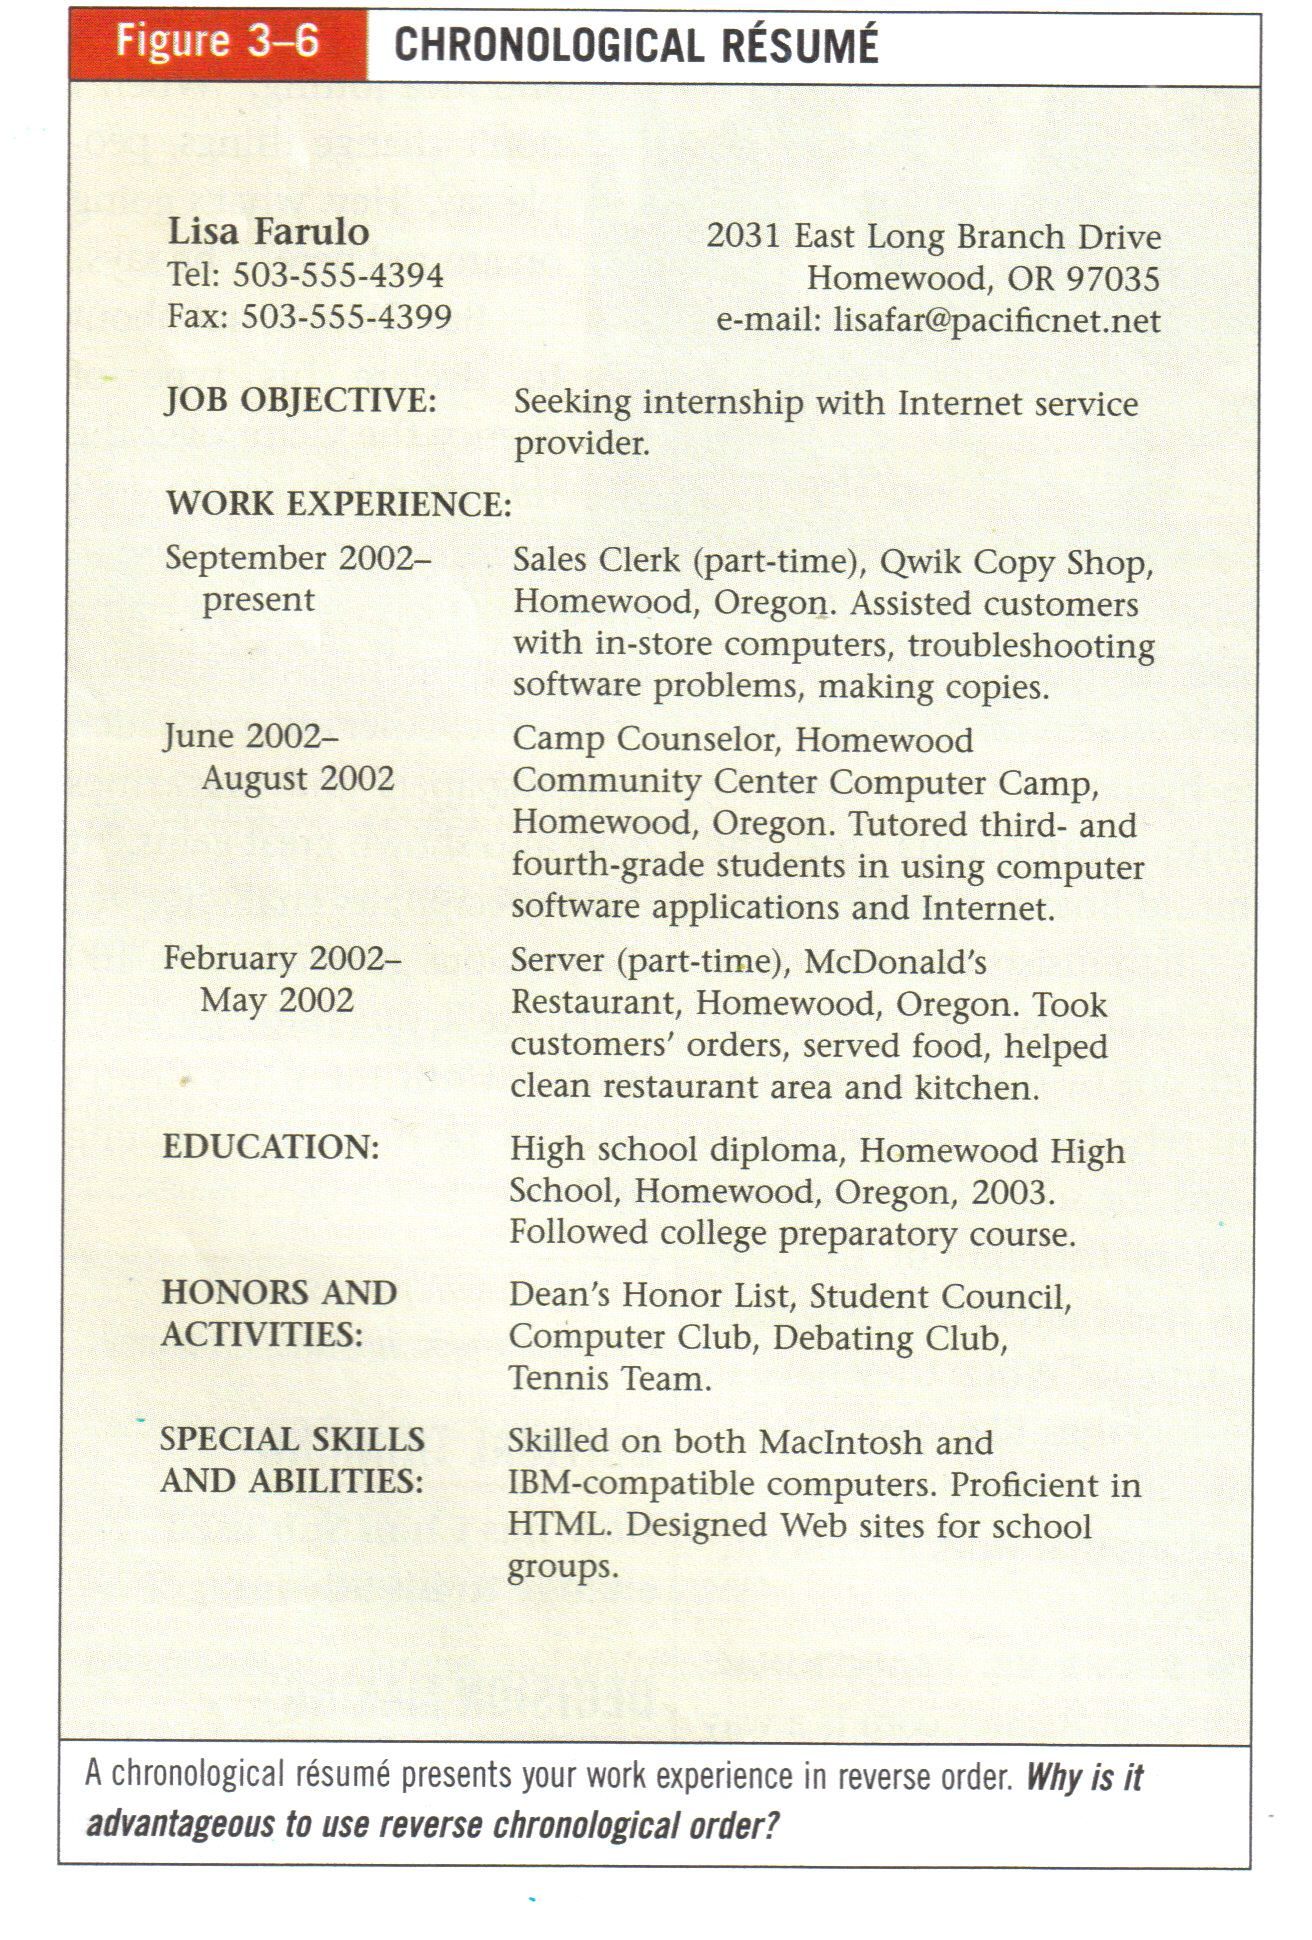 resume examples sample chronological resume - Examples Of Chronological Resumes